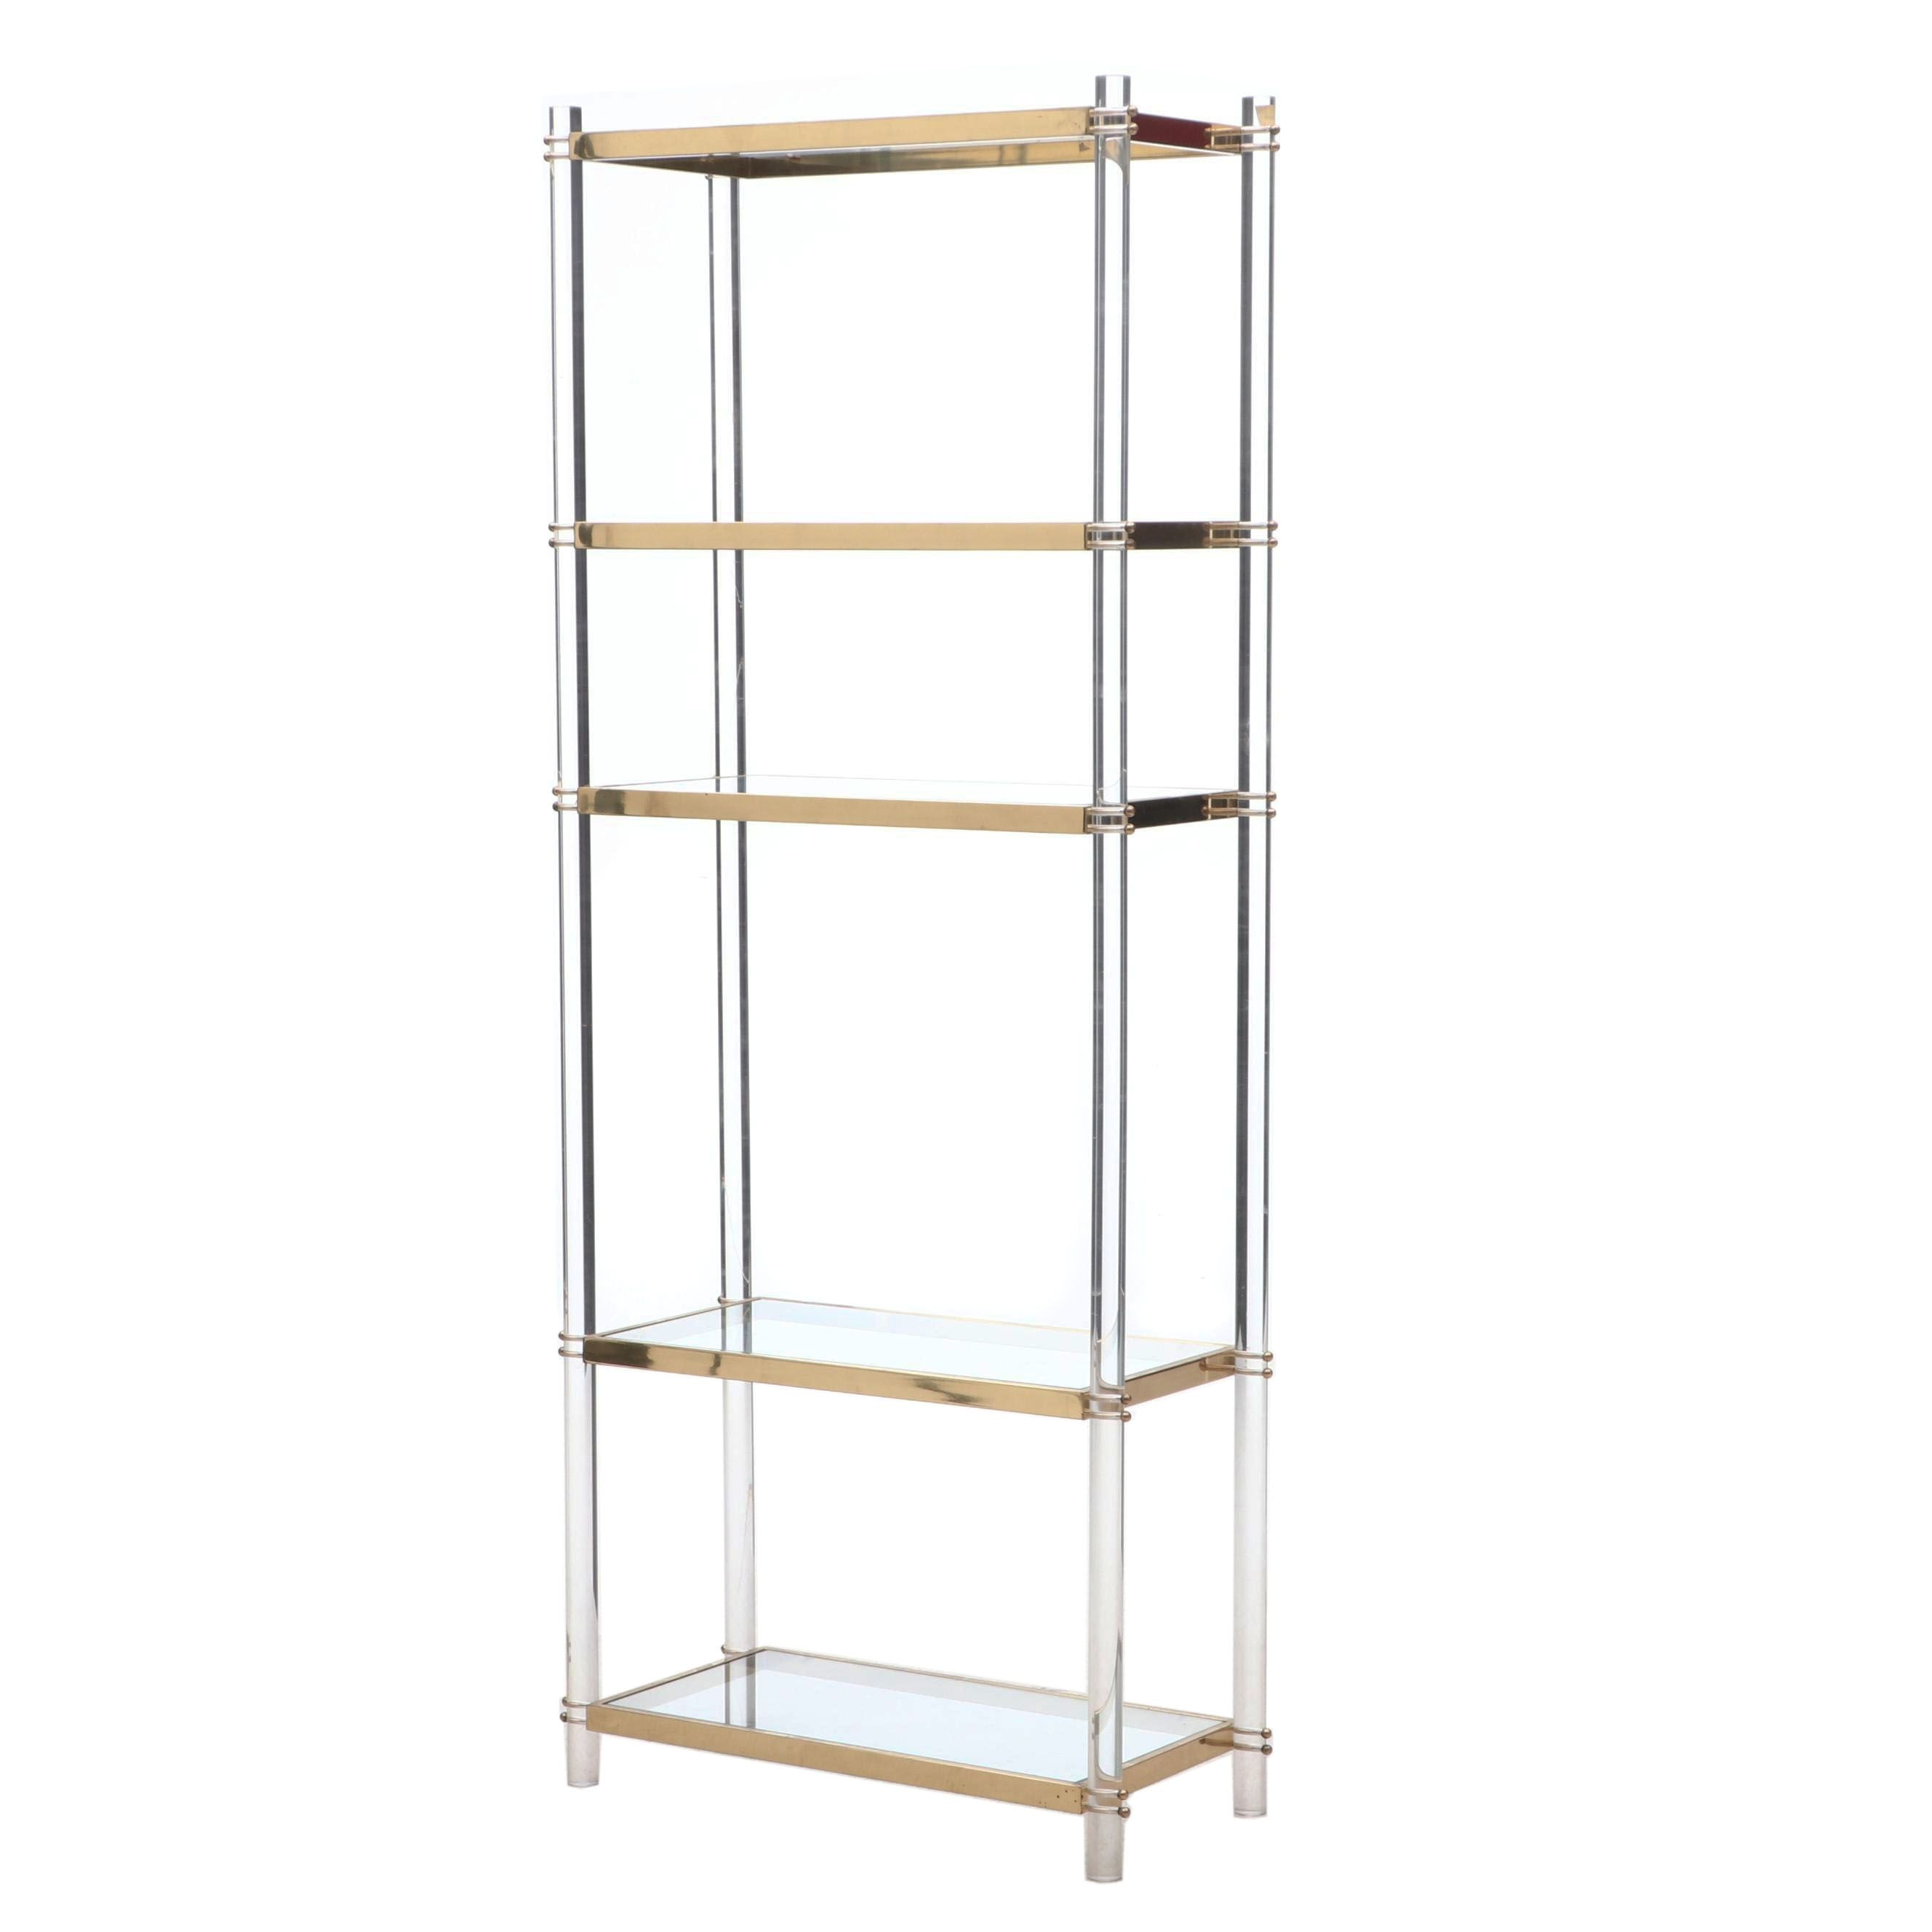 Acrylic and Brass Tone Shelving Unit